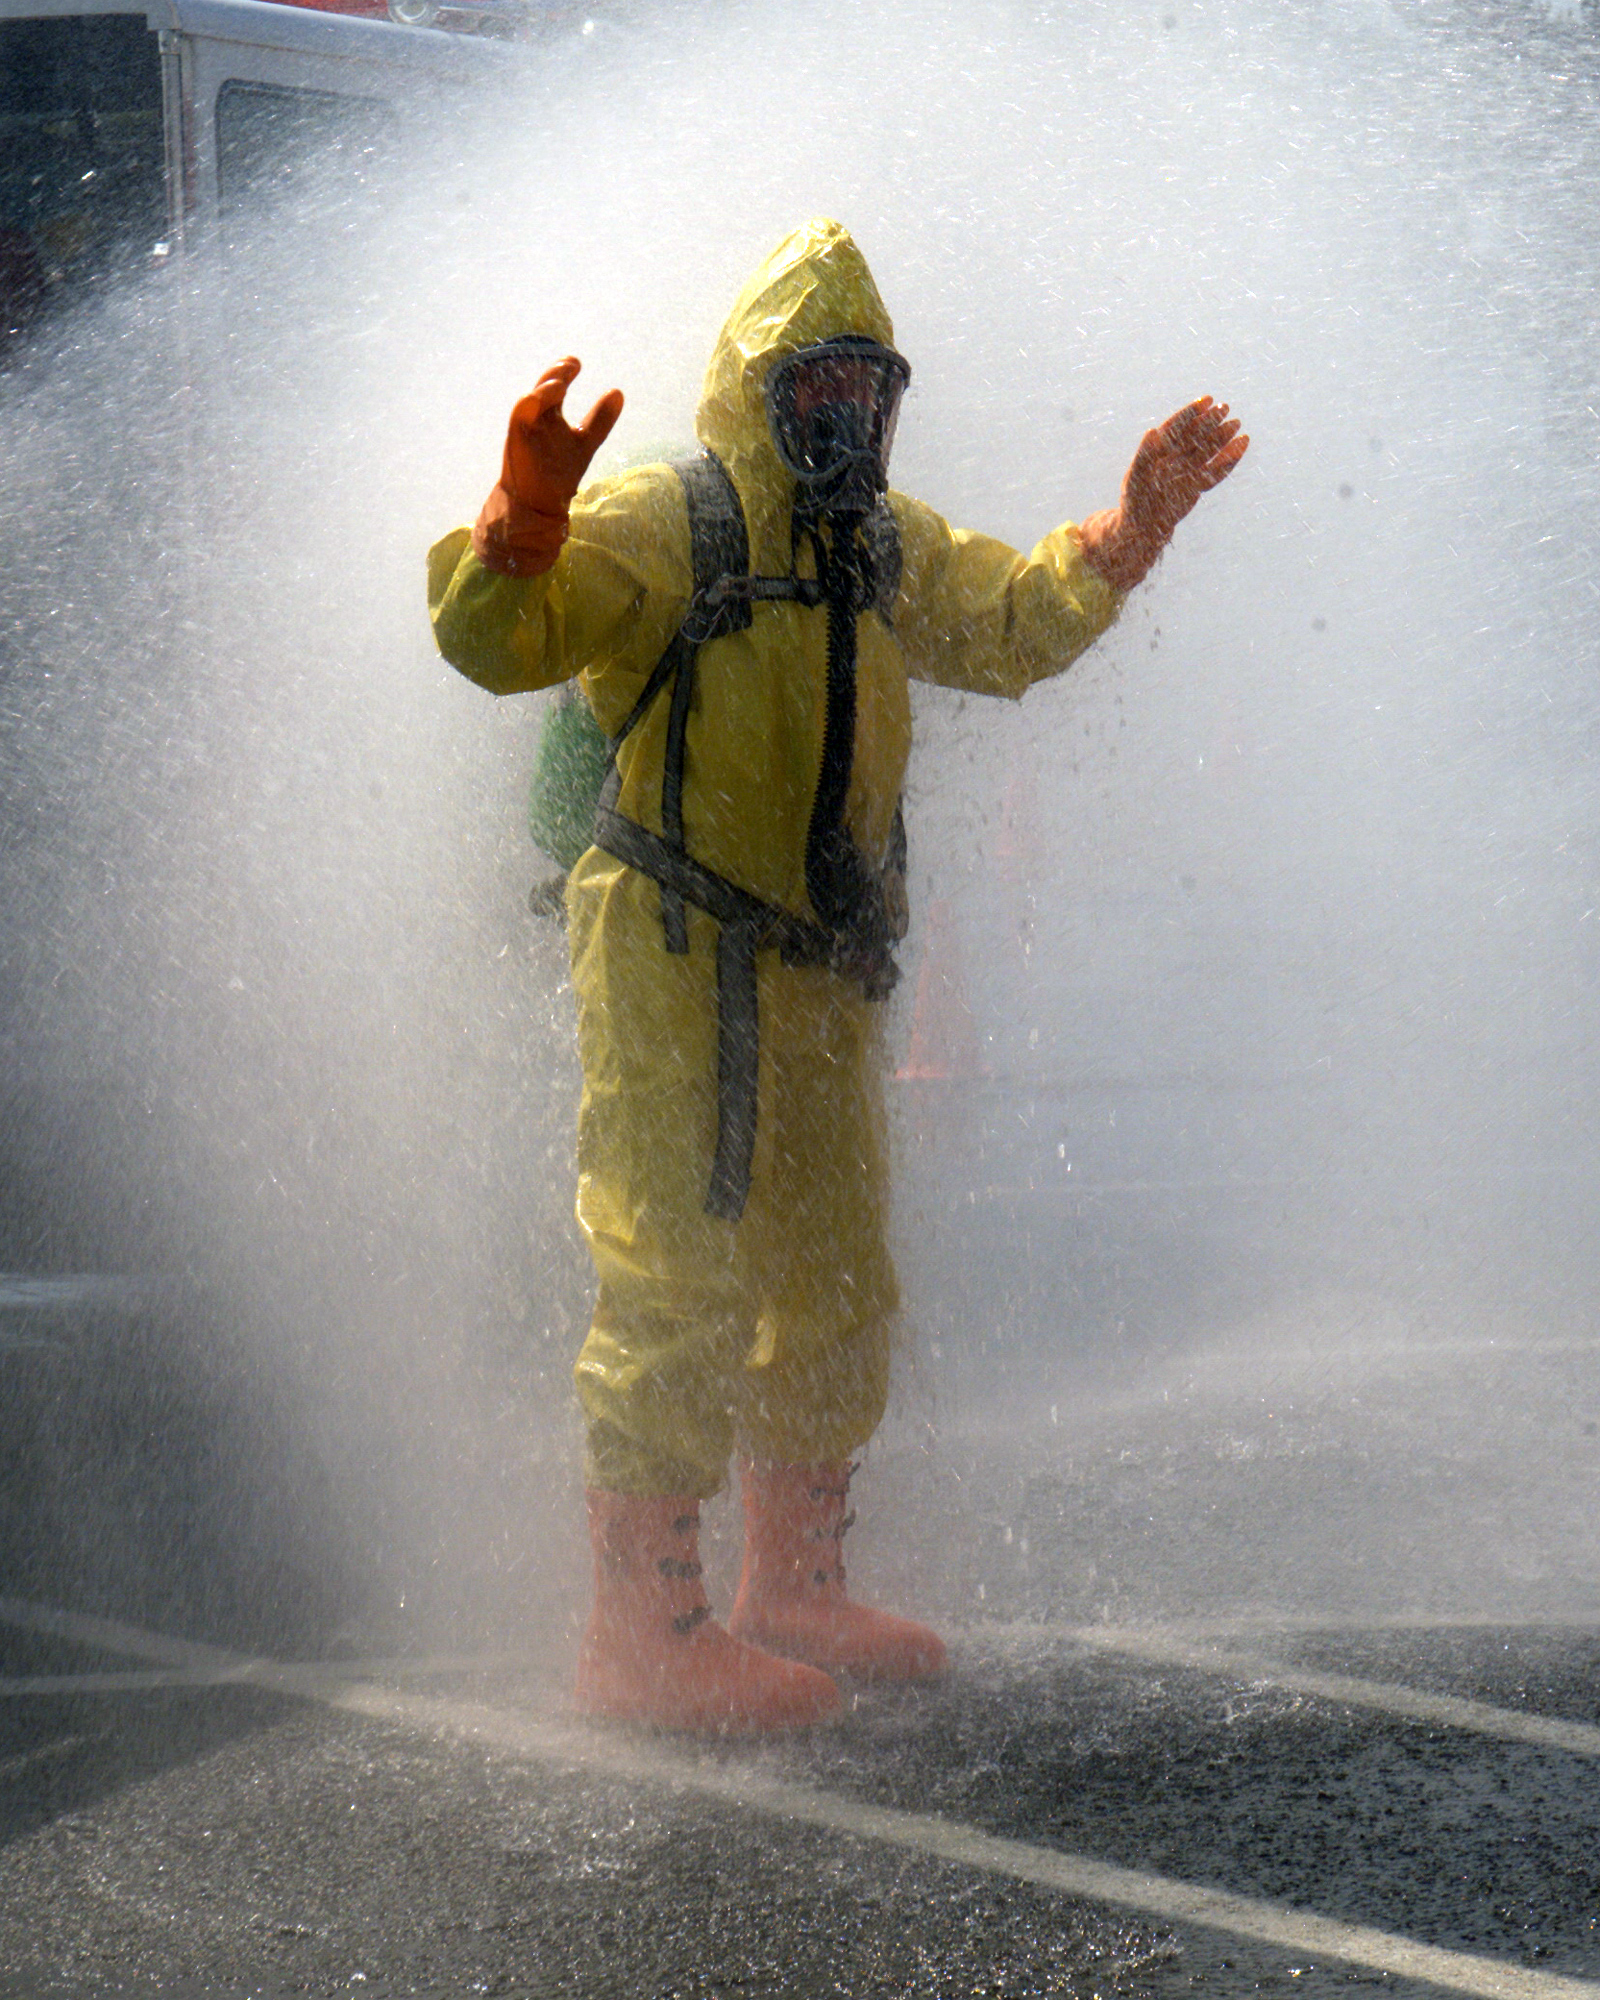 Person in a hazmat suit getting hosed down